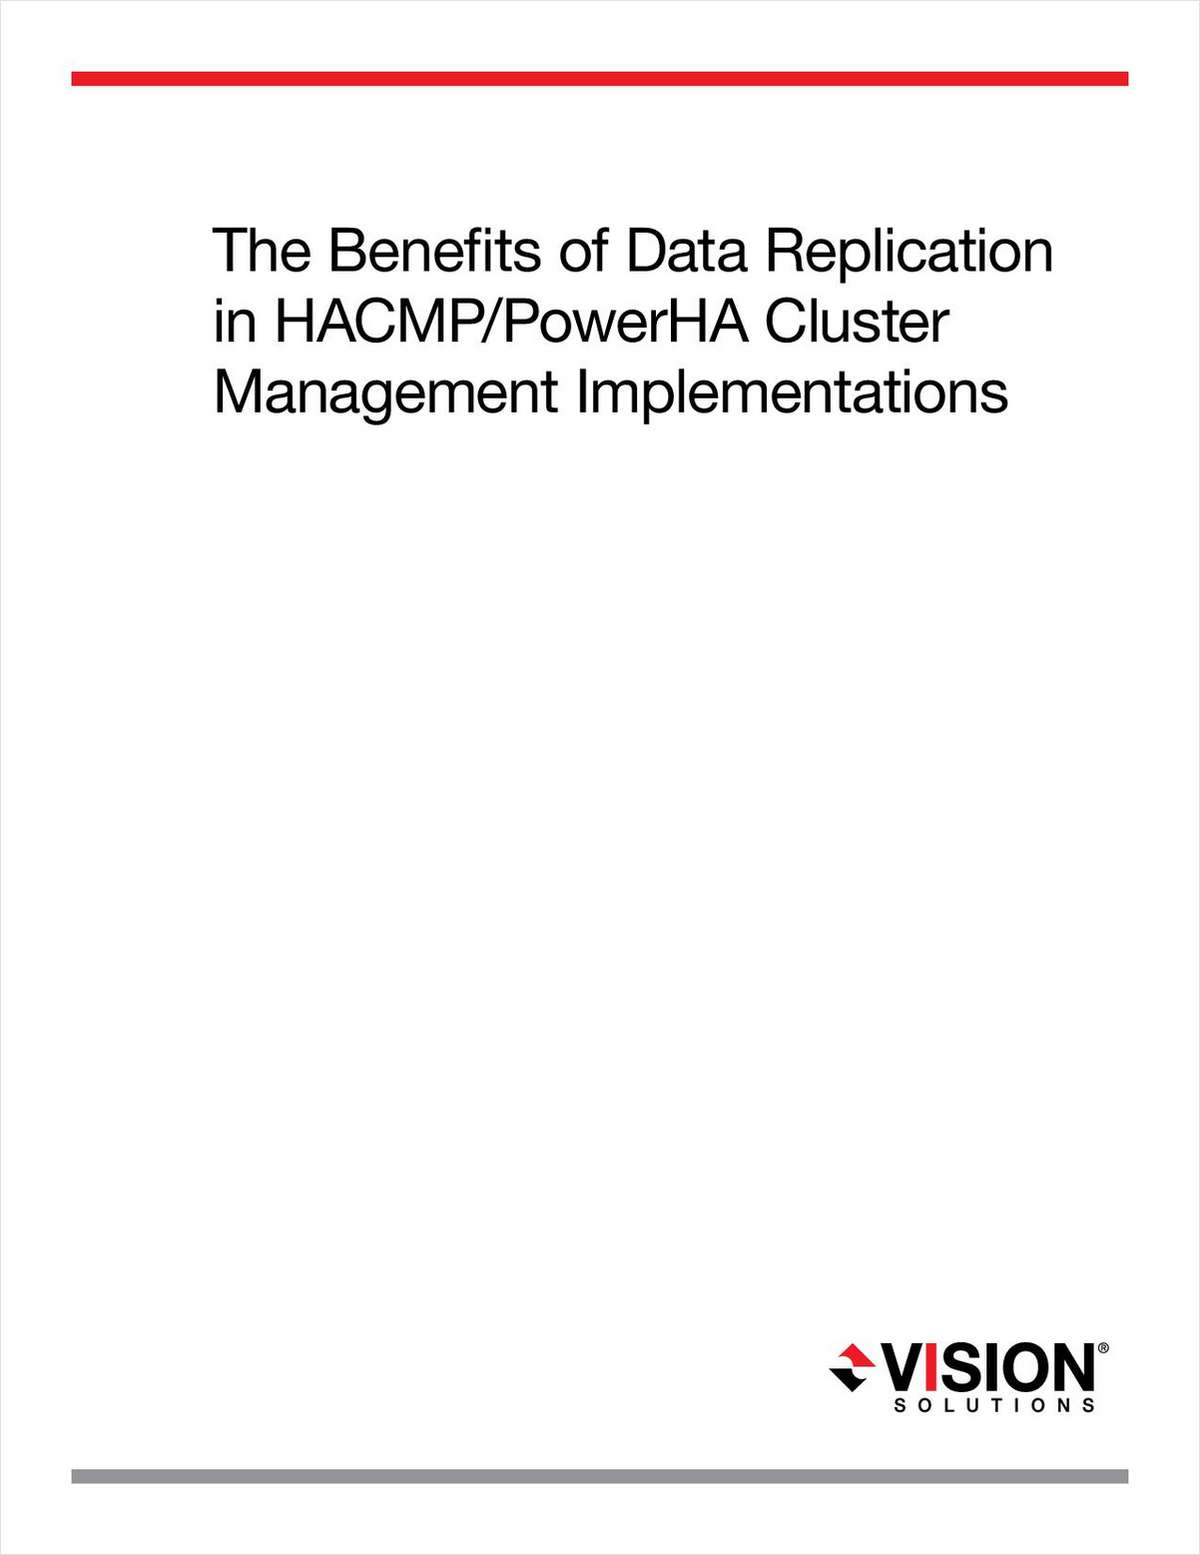 The Benefits of AIX Data Replication in IBM HACMP Cluster Management Implementations